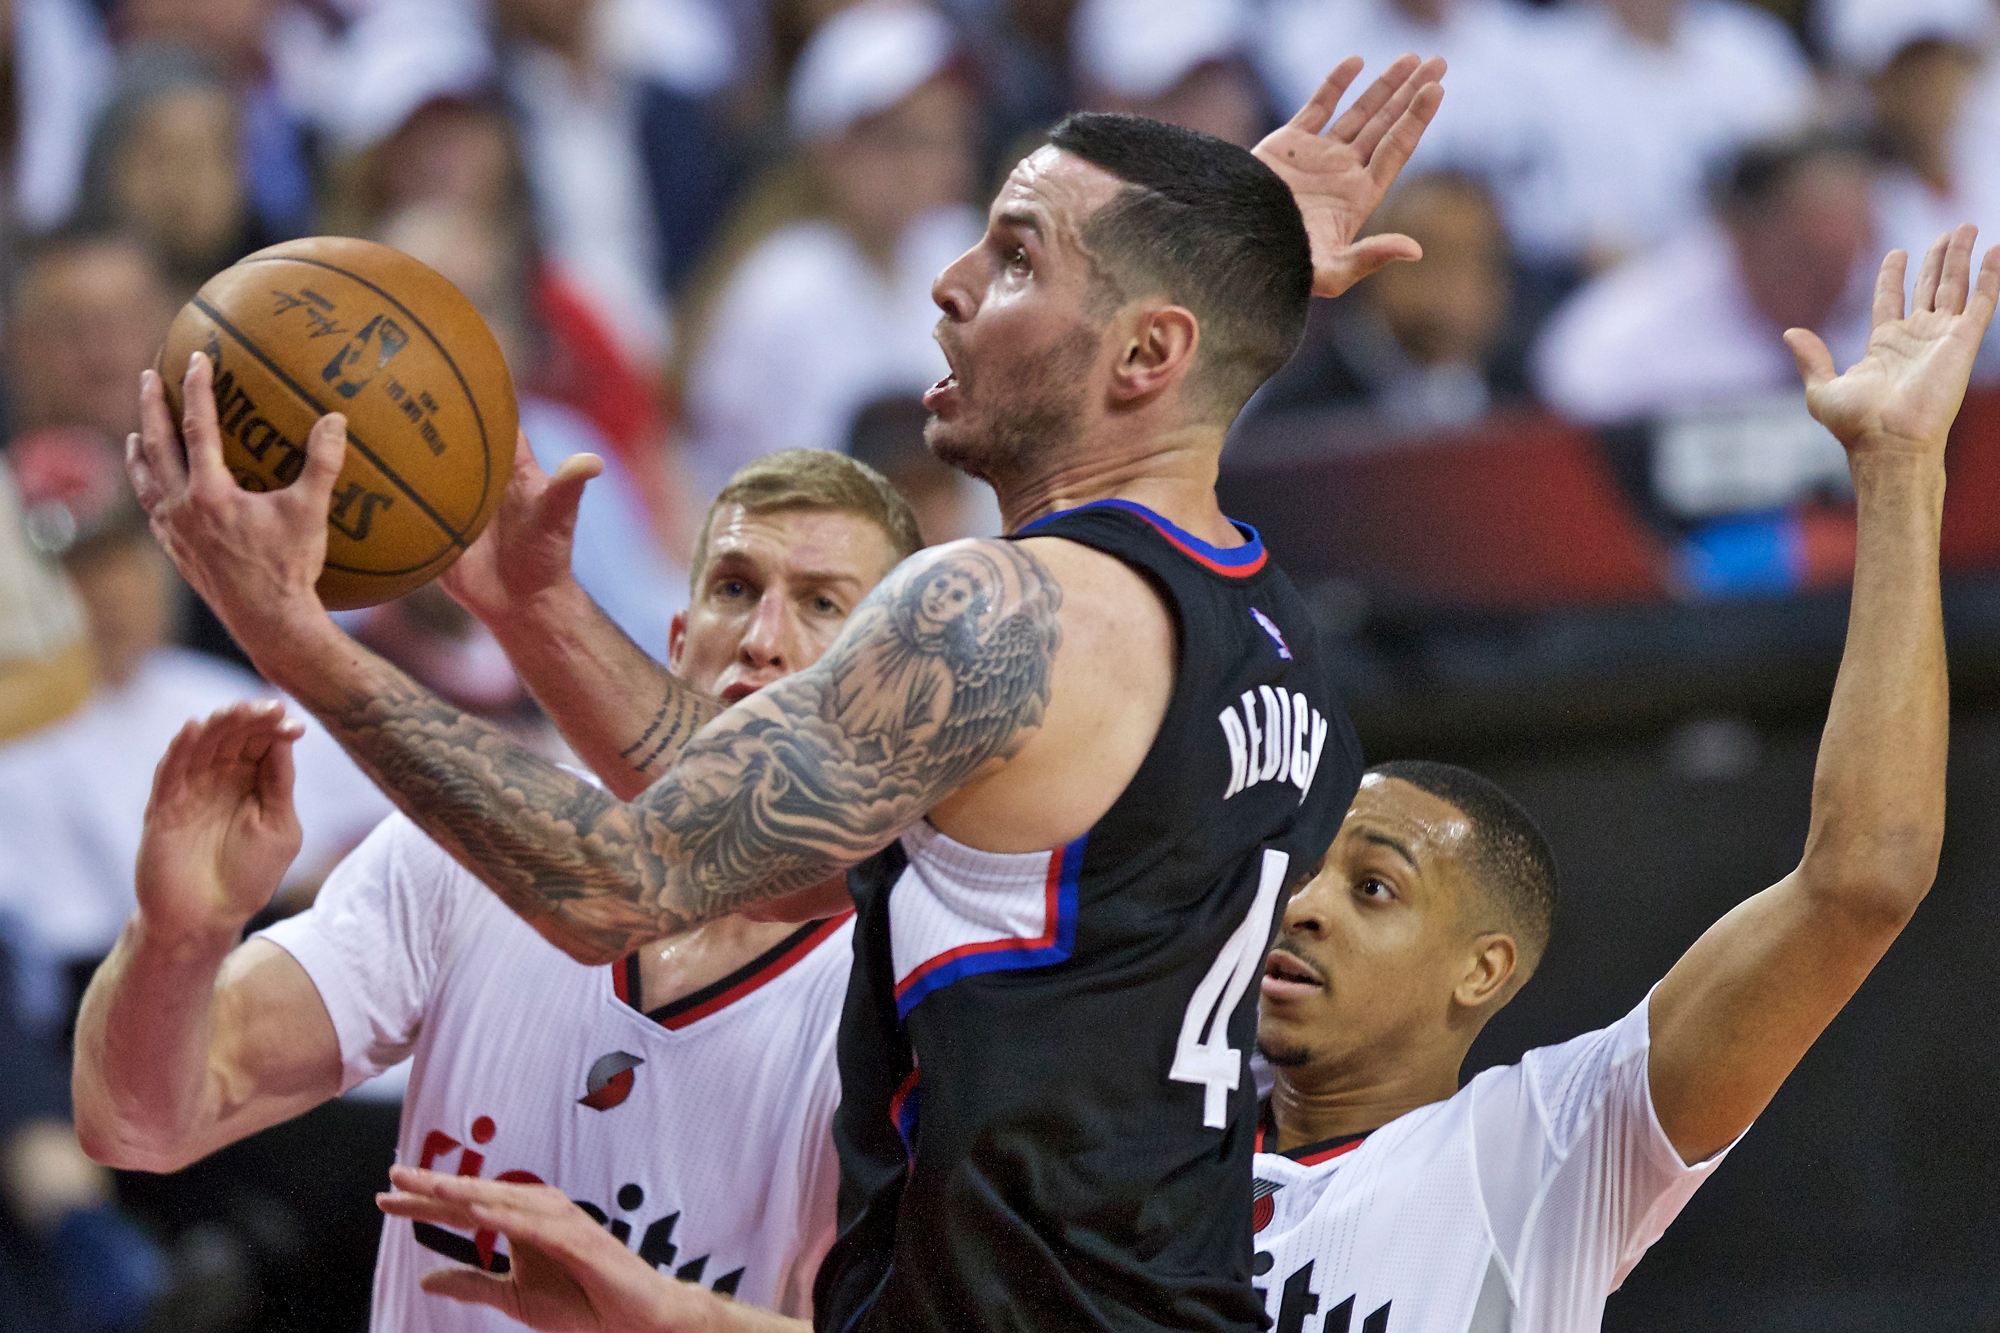 Los Angeles Clippers guard J.J. Redick, center, shoots in front of Portland Trail Blazers center Mason Plumlee, left, and guard C.J. McCollum, right, during the first half of Game 3 of an NBA basketball first-round playoff series Saturday, April 23, 2016, in Portland, Ore